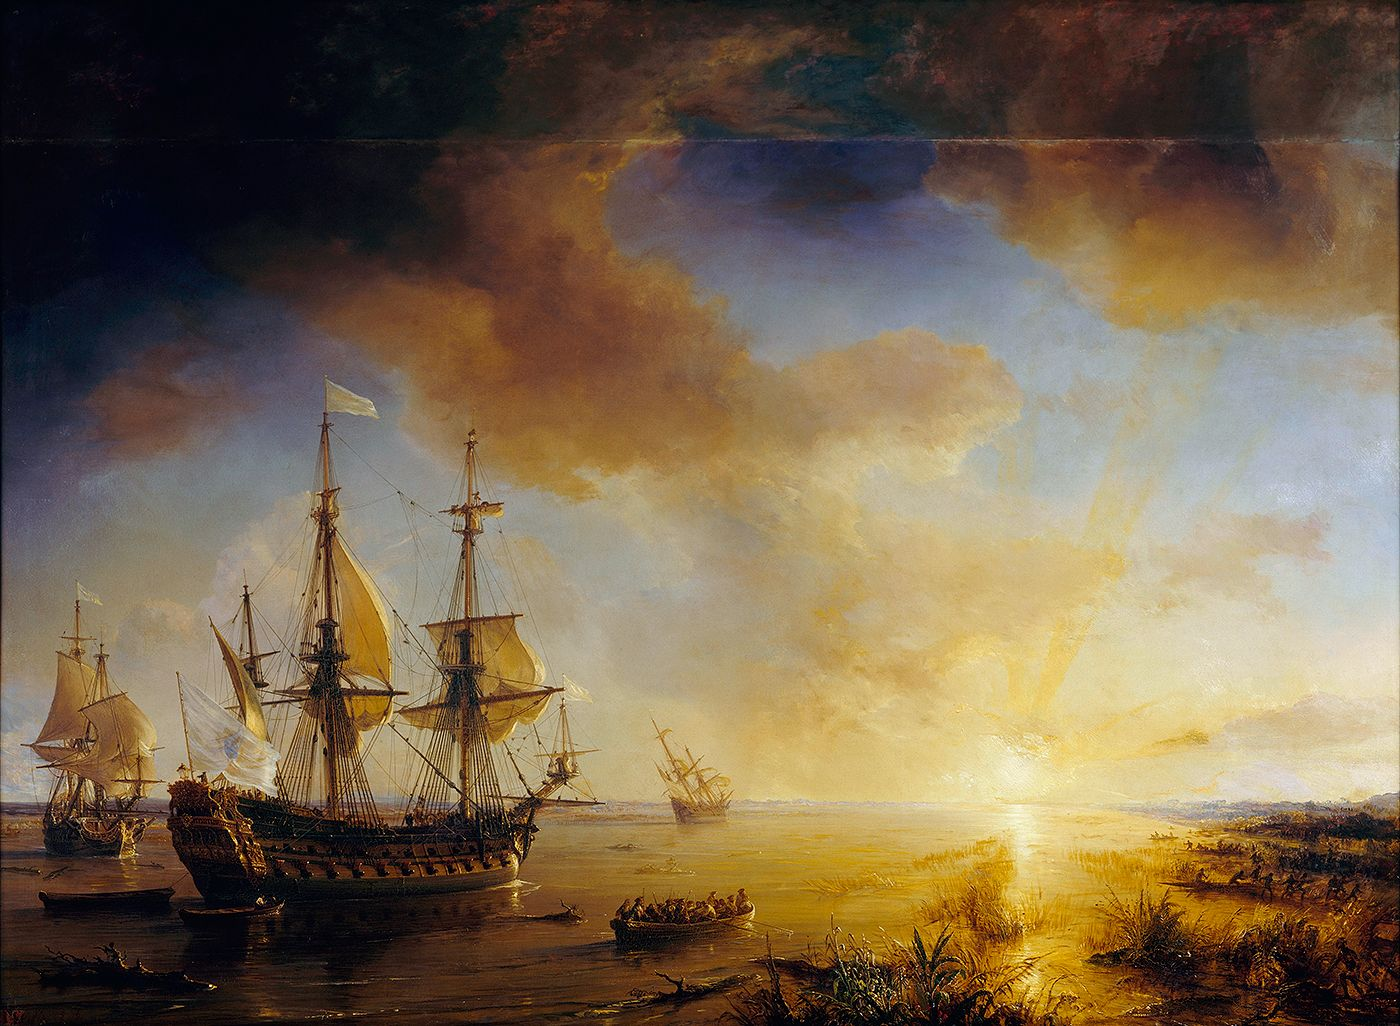 Painting by Gudin titled  La Salle's Expedition to Louisiana in 1684;  they are at the entrance to Matagorda Bay.